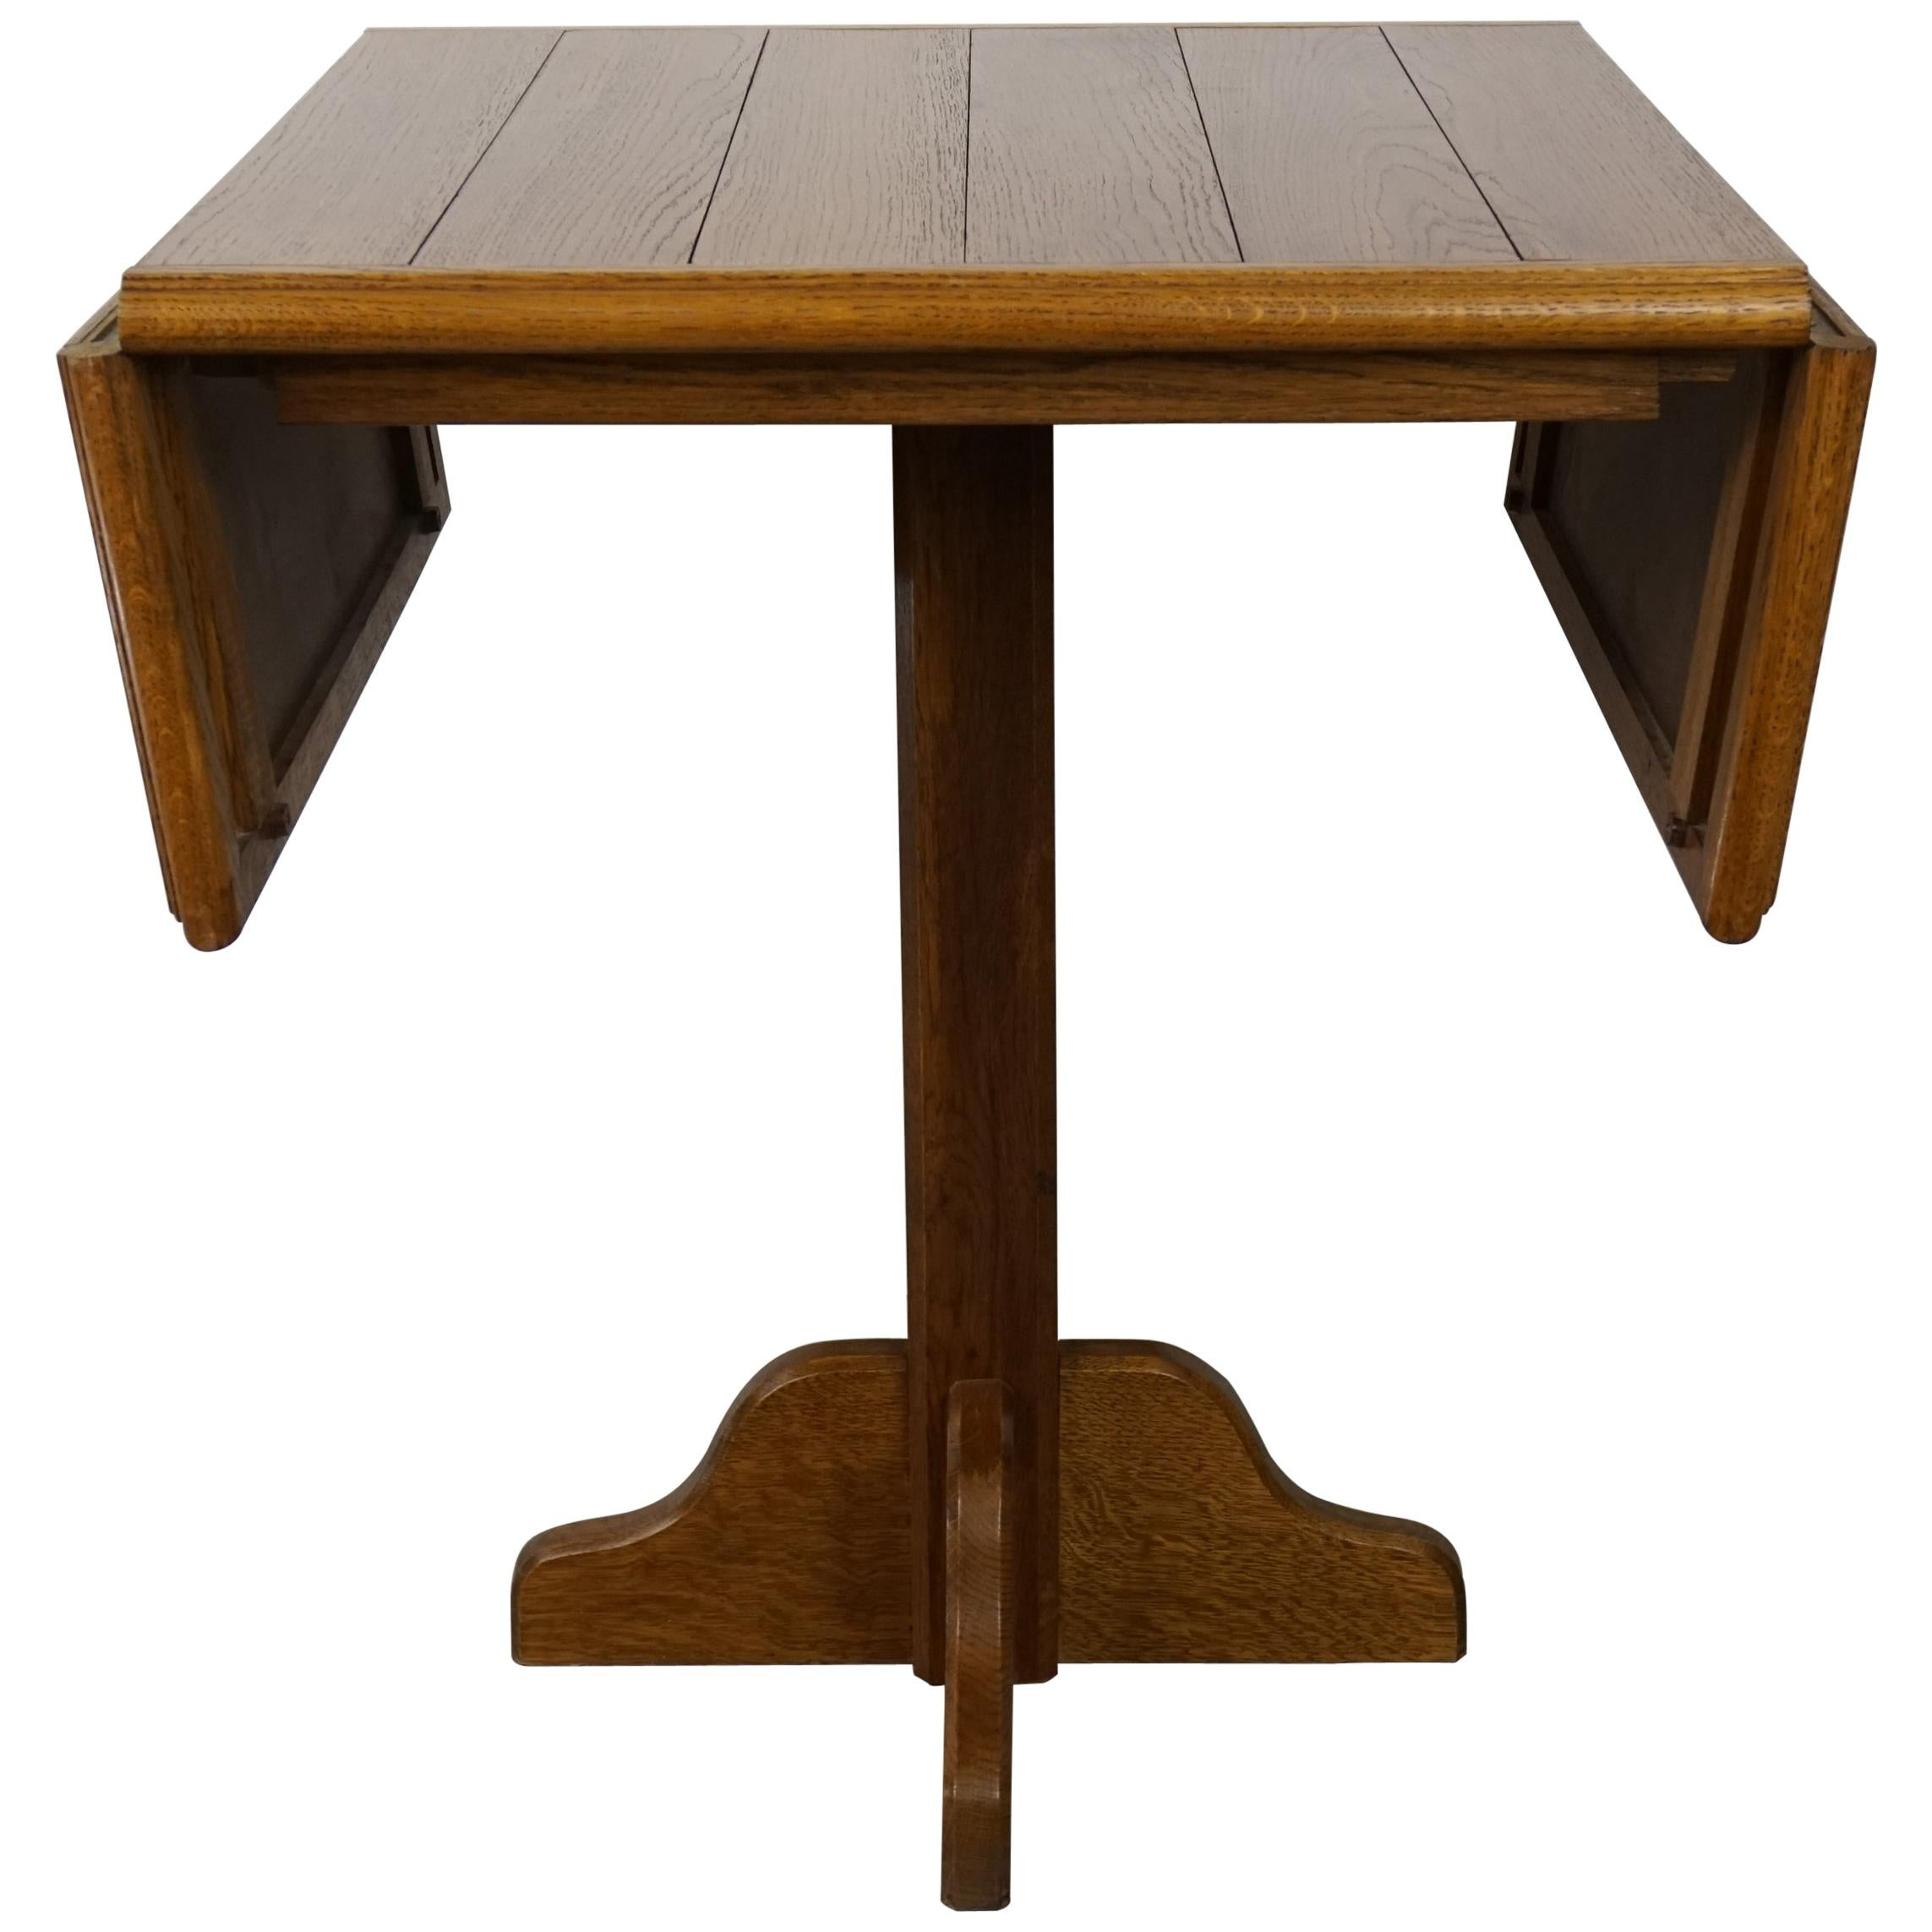 Oak Wooden 1960s French Design Folding and Dining Table